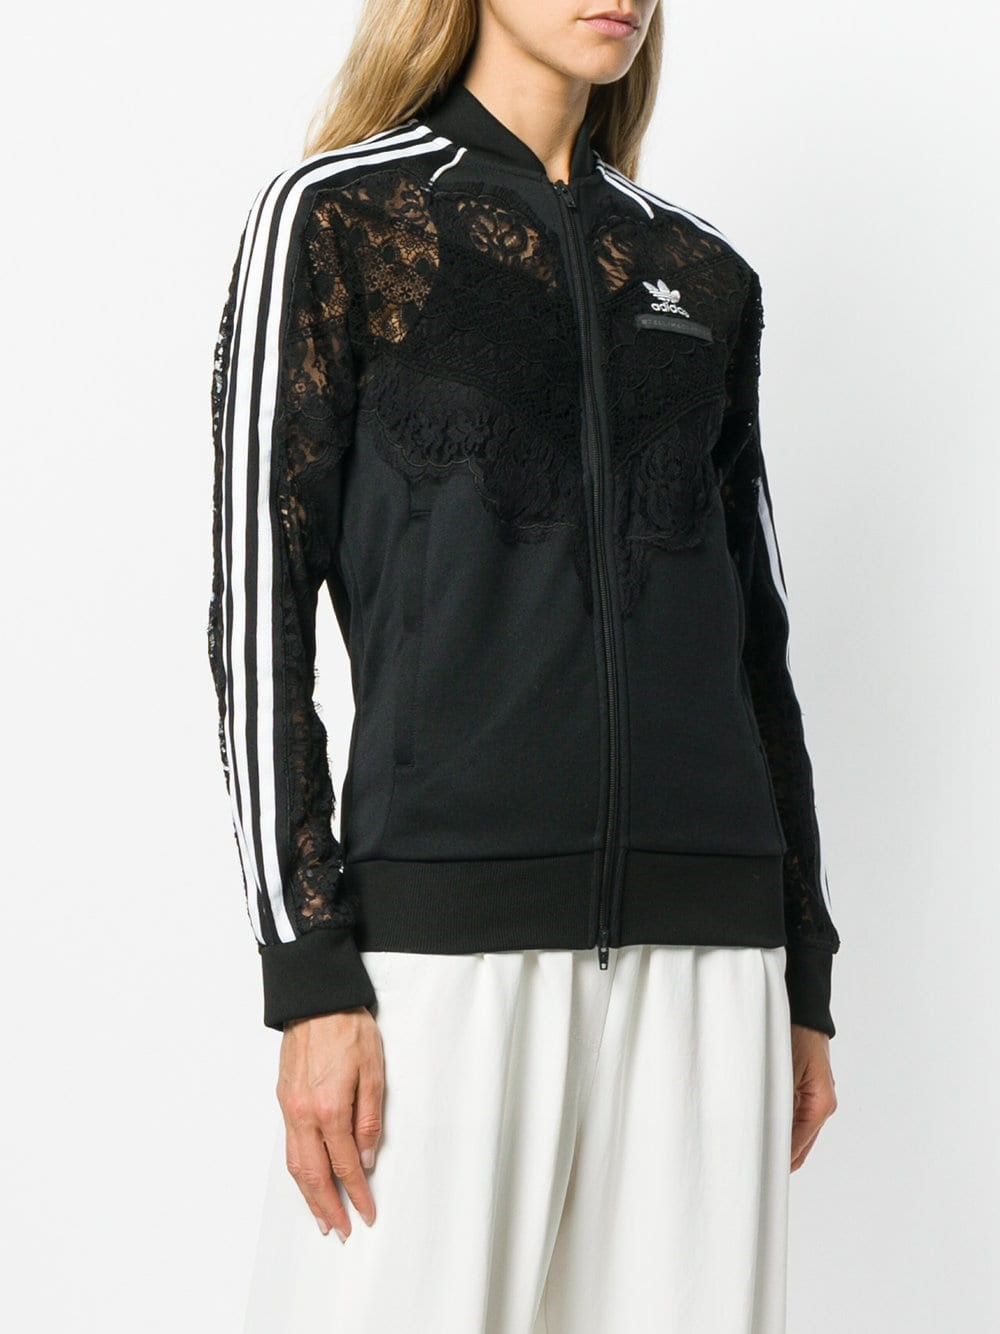 stella mccartney ADIDAS ZIPPED JACKET available on montiboutique.com ... cc93ee3ce2b5